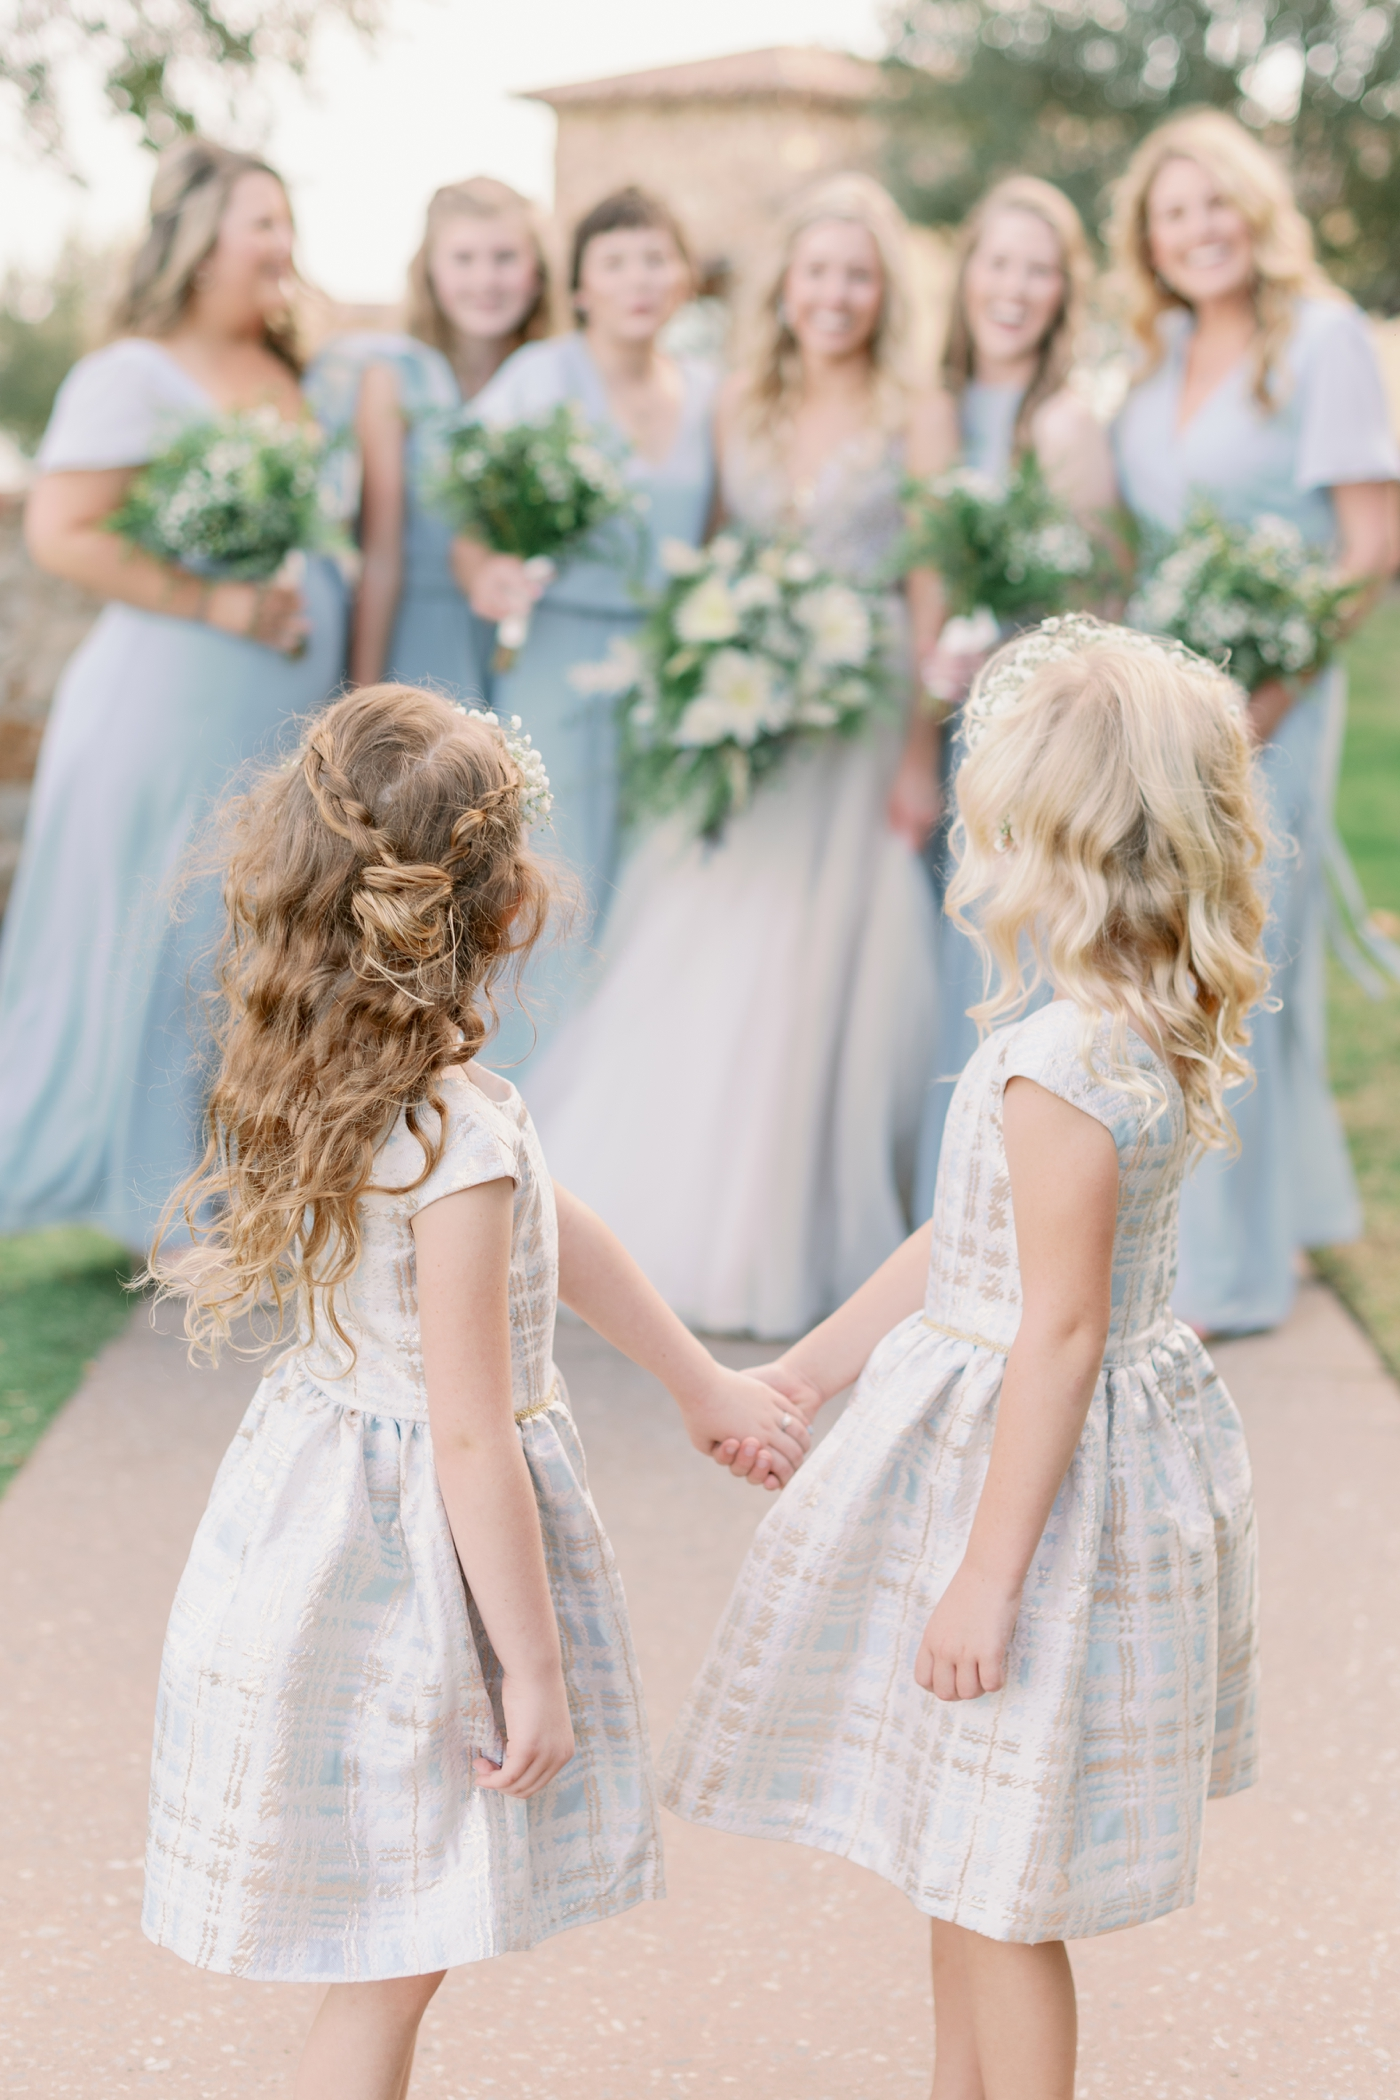 cute flower girl photo ideas